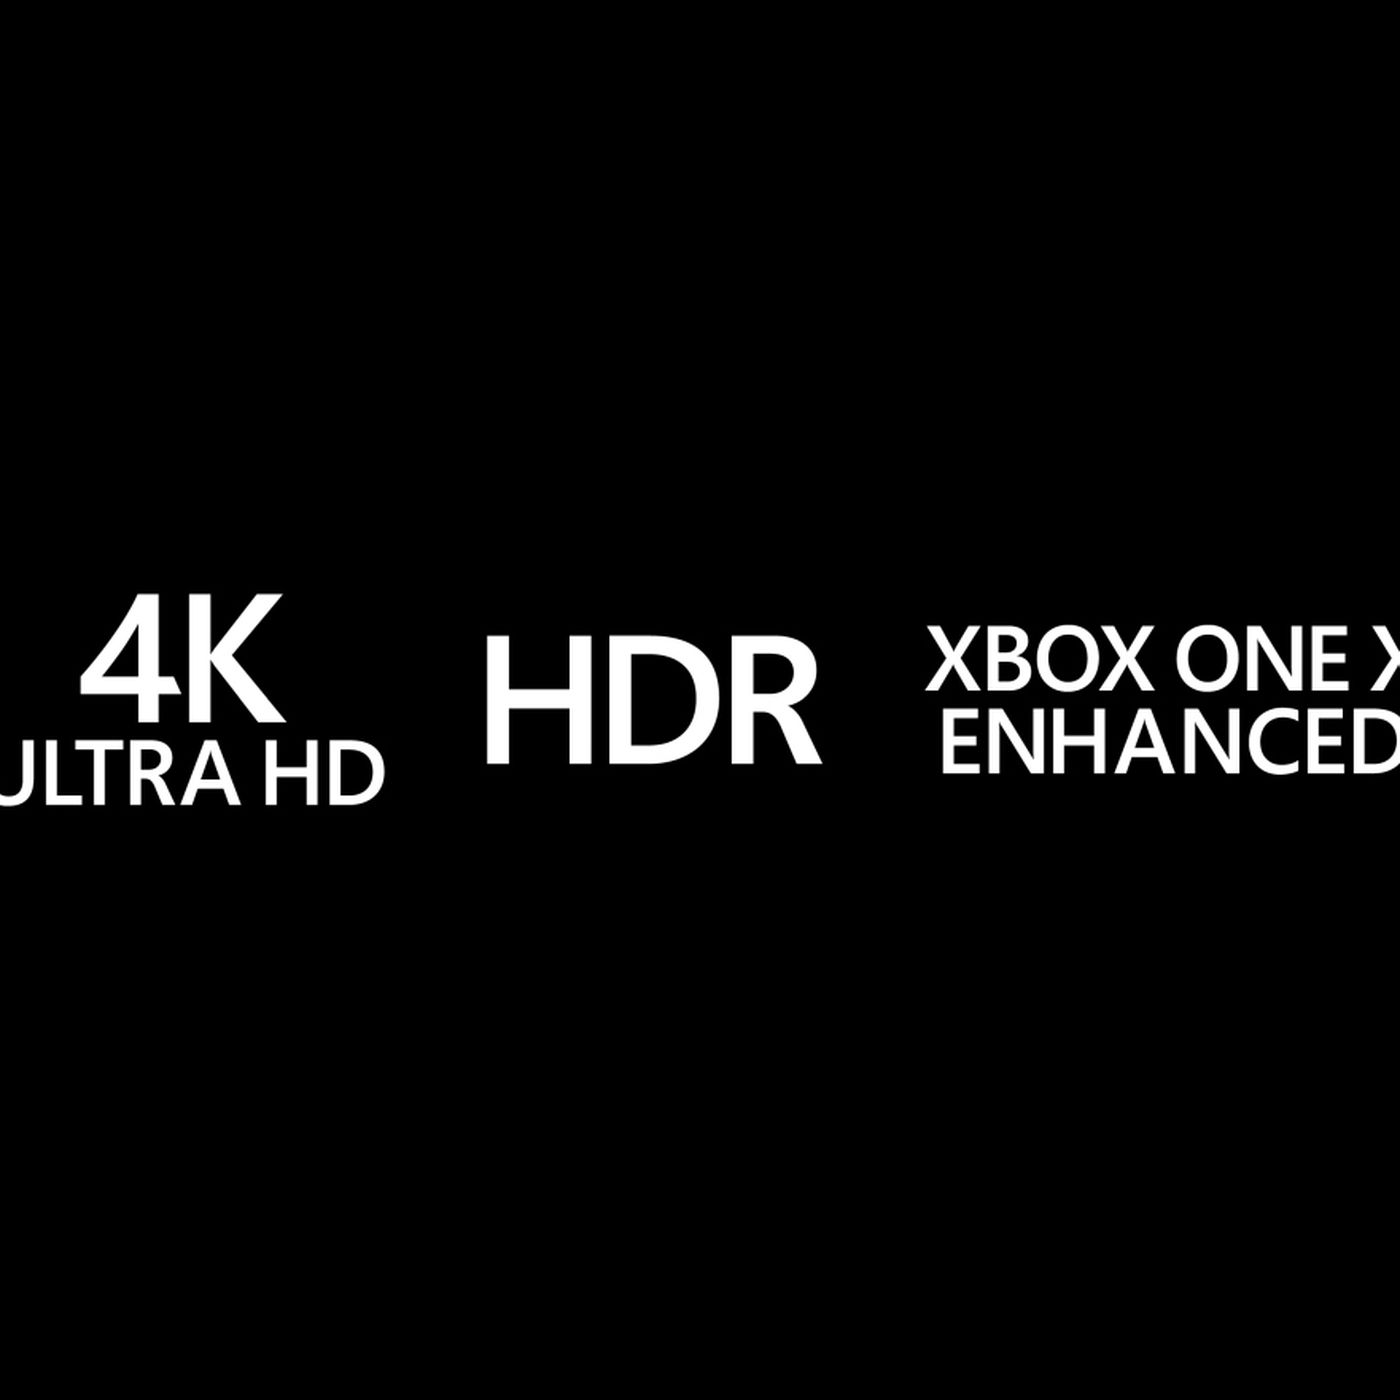 Look For These Xbox One X Logos To Know You Re Getting Enhanced 4k